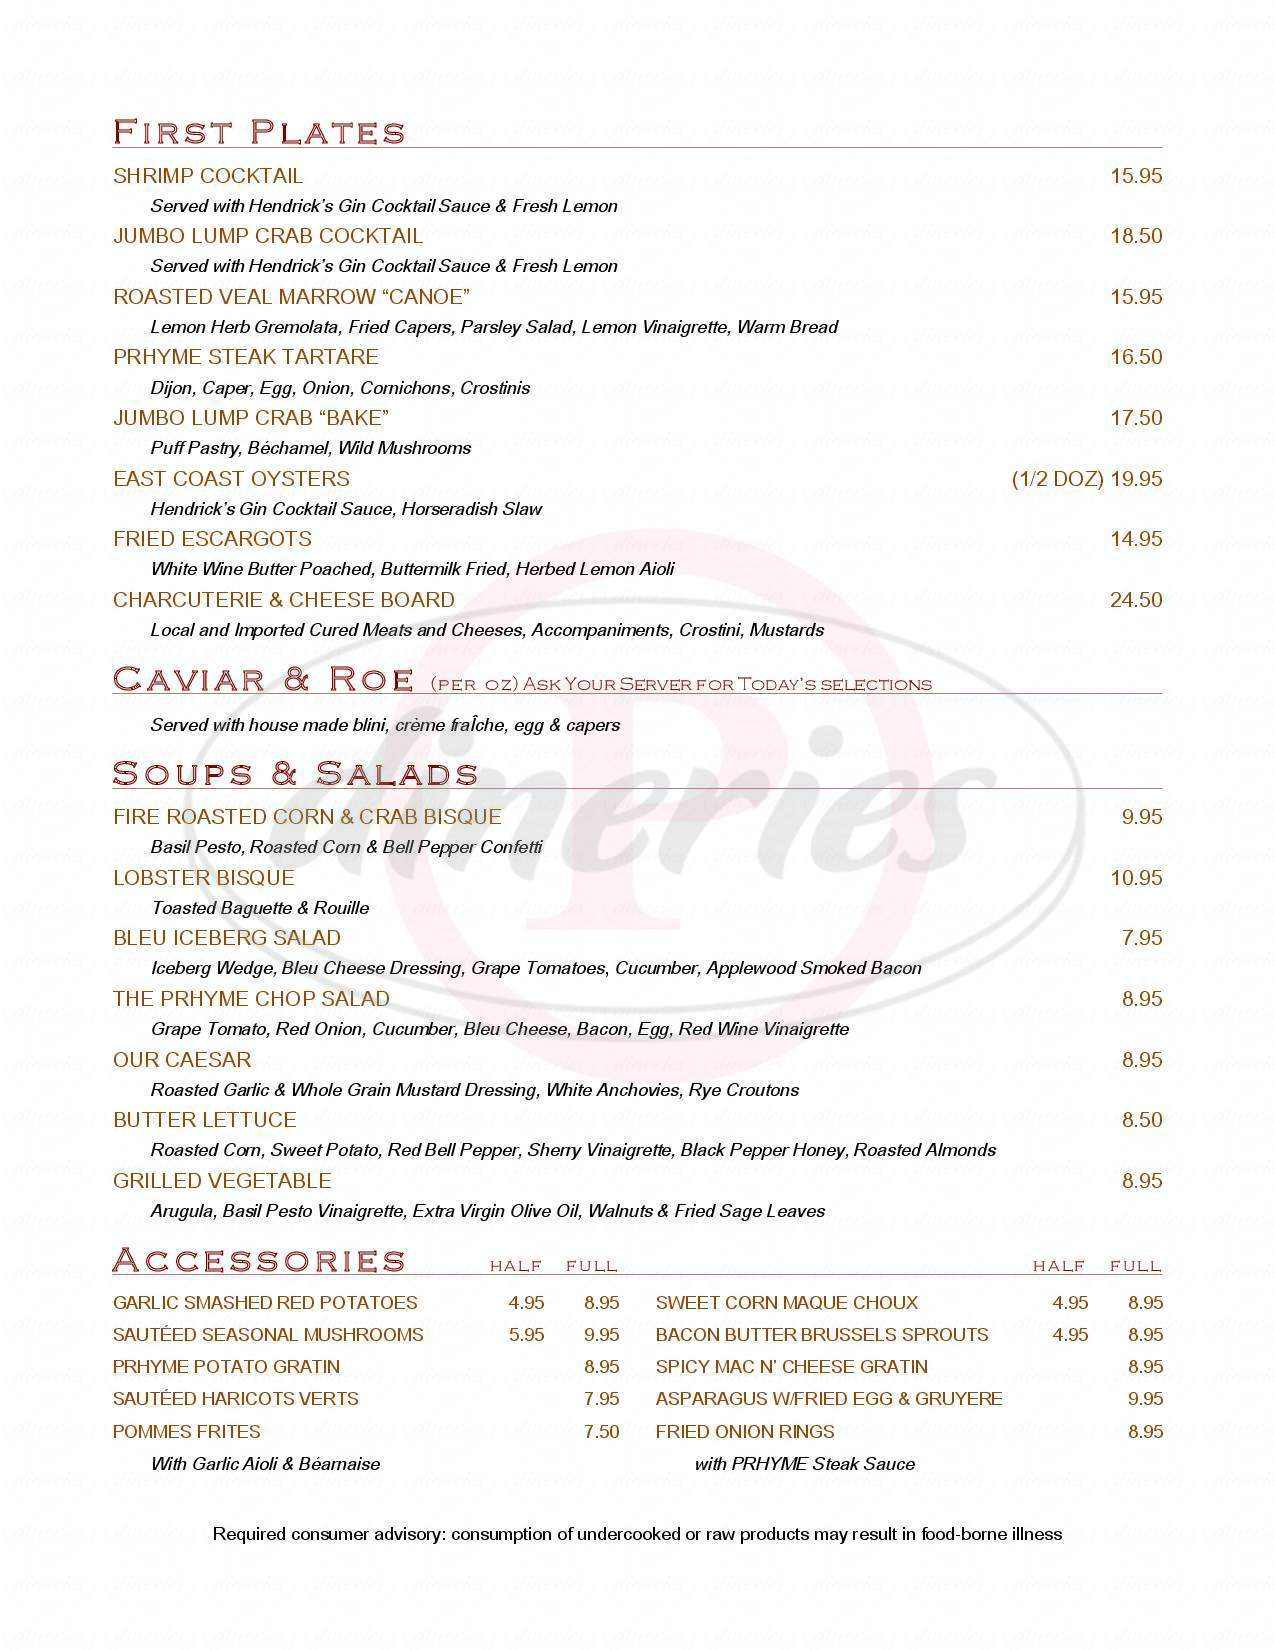 menu for Phryme Downtown Steakhouse